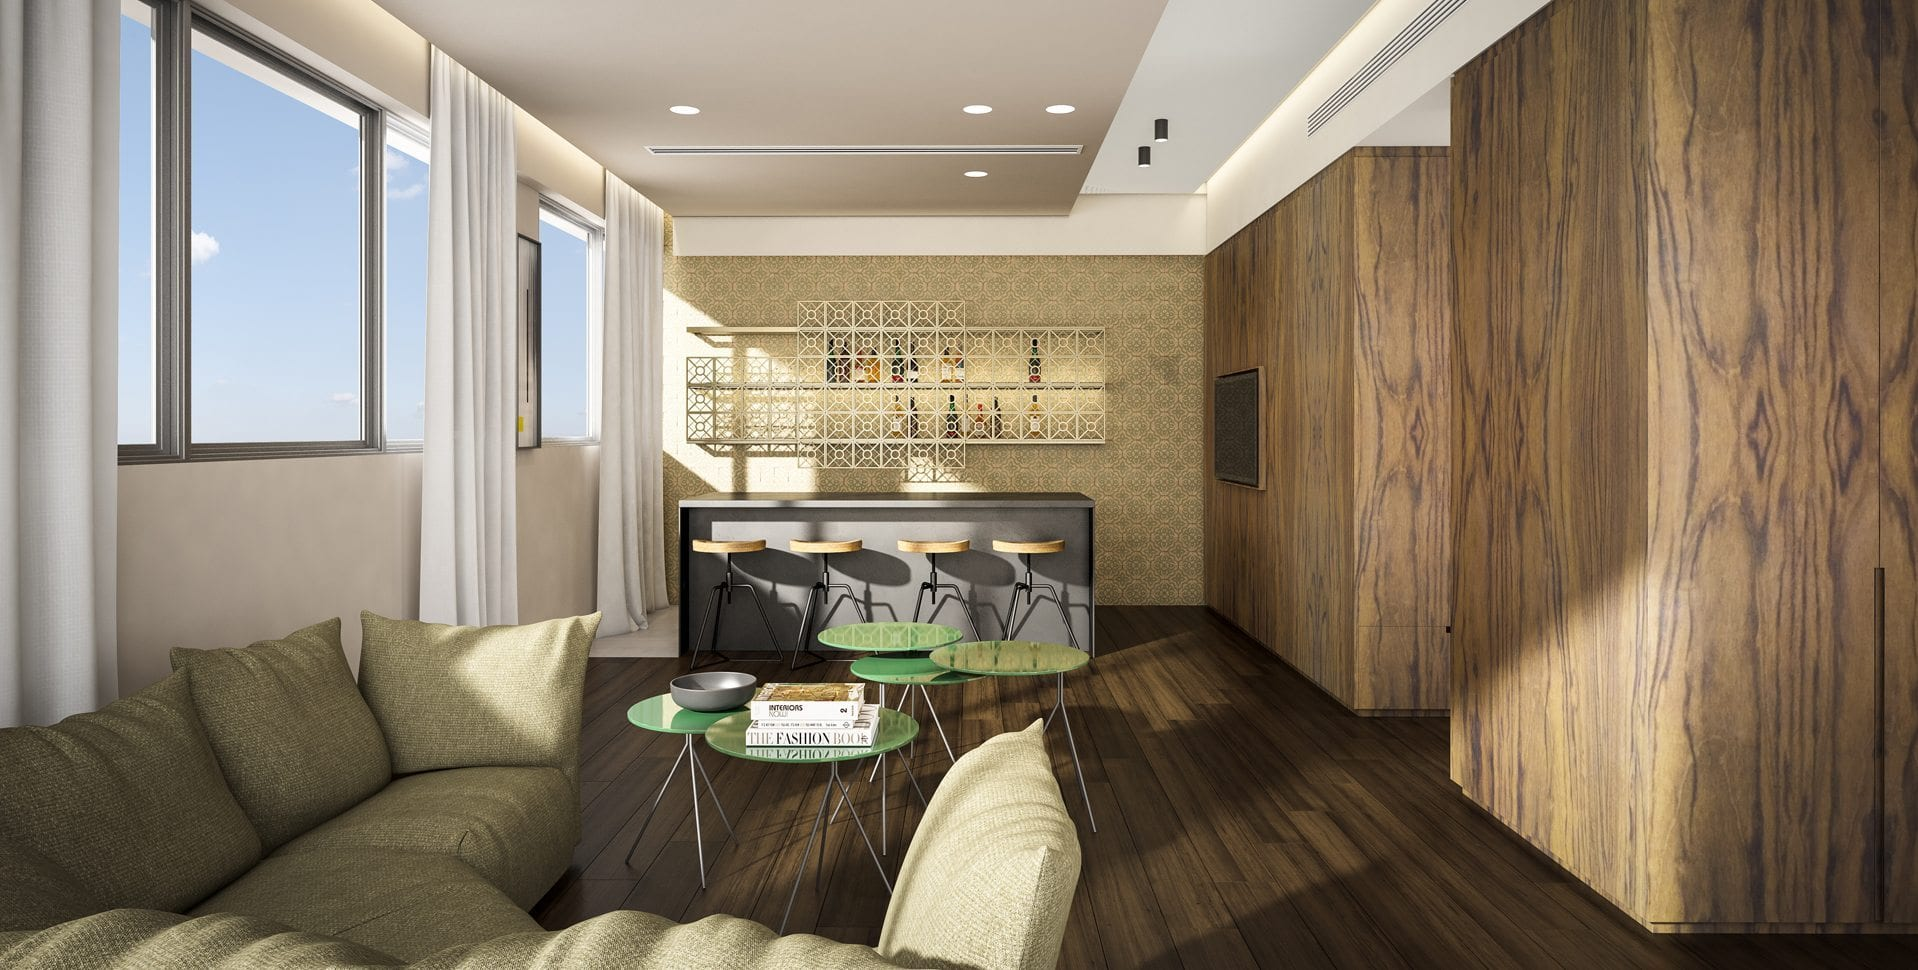 Maayan-Golan_Architectural-Visualization_ duplex-interior-visualization_livng-room_design-hazak-studio_04